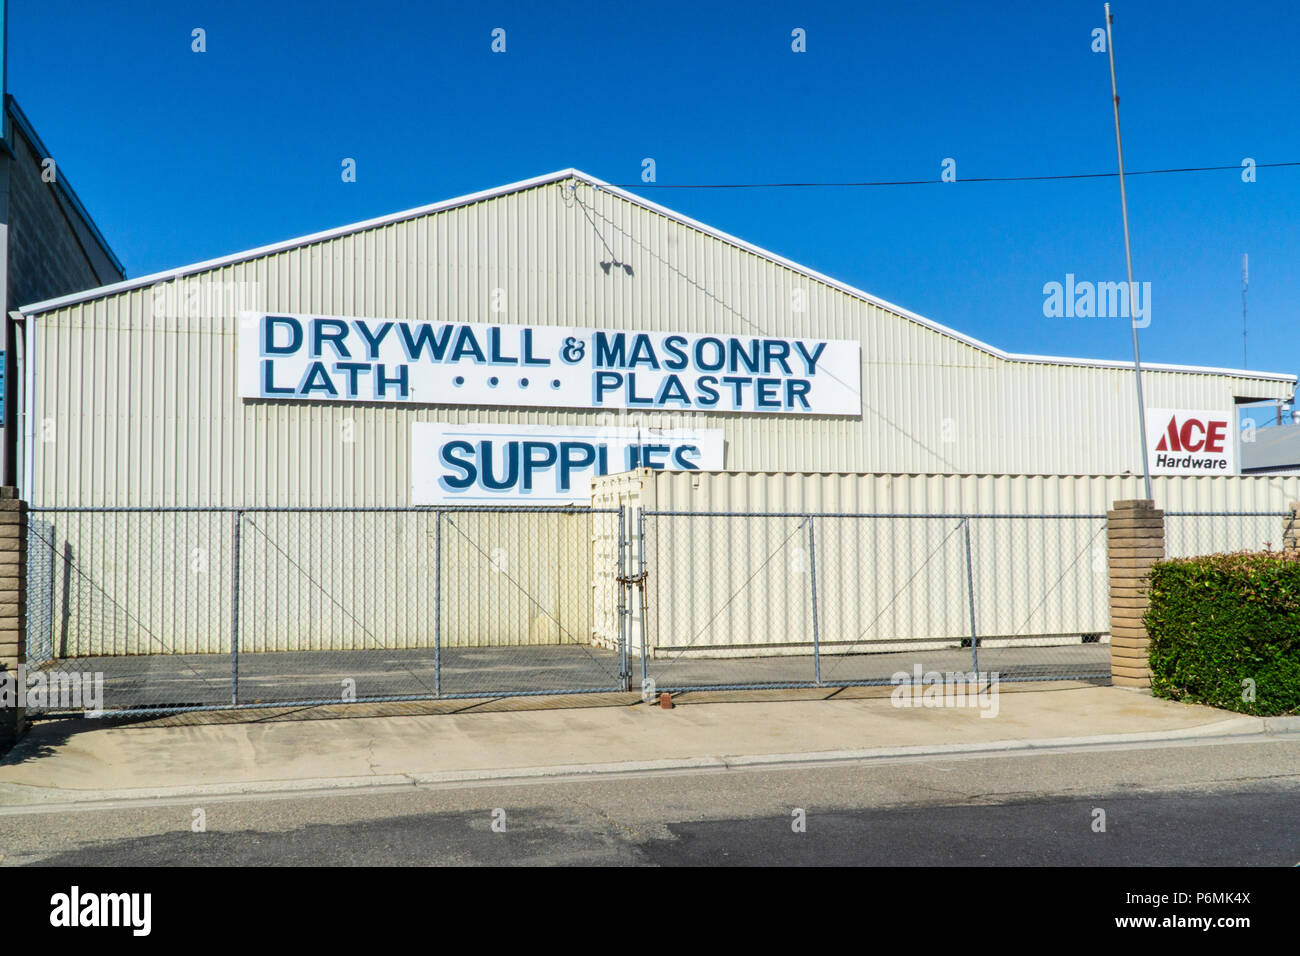 A drywall and masonry supply store in Ceres California Stock Photo